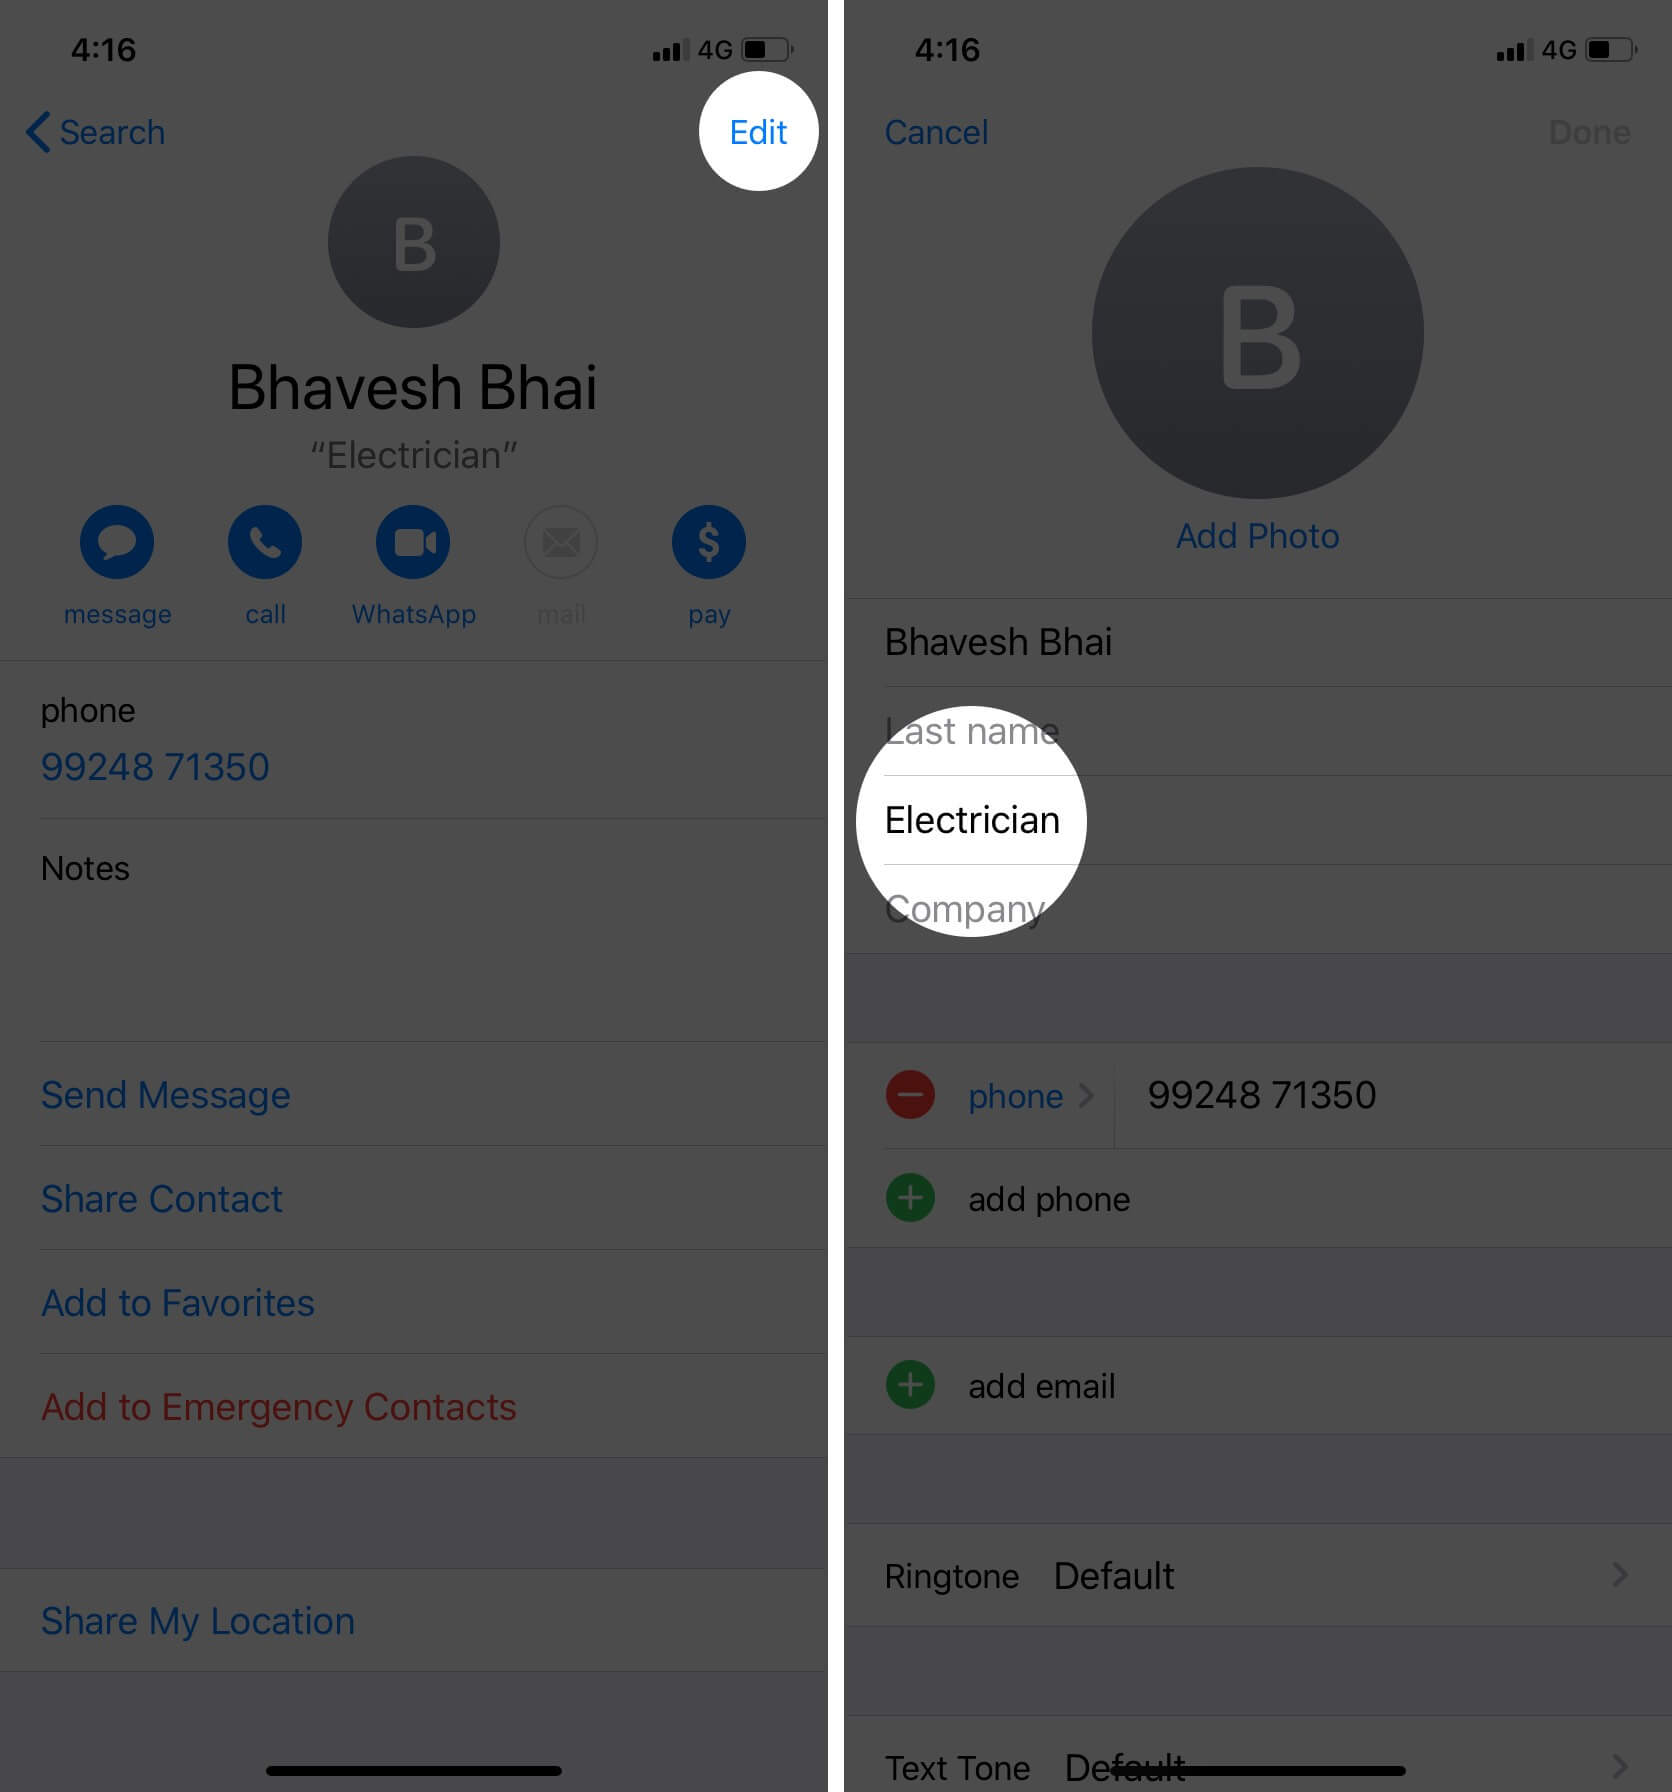 Open iPhone Contacts app and select Contact with nickname